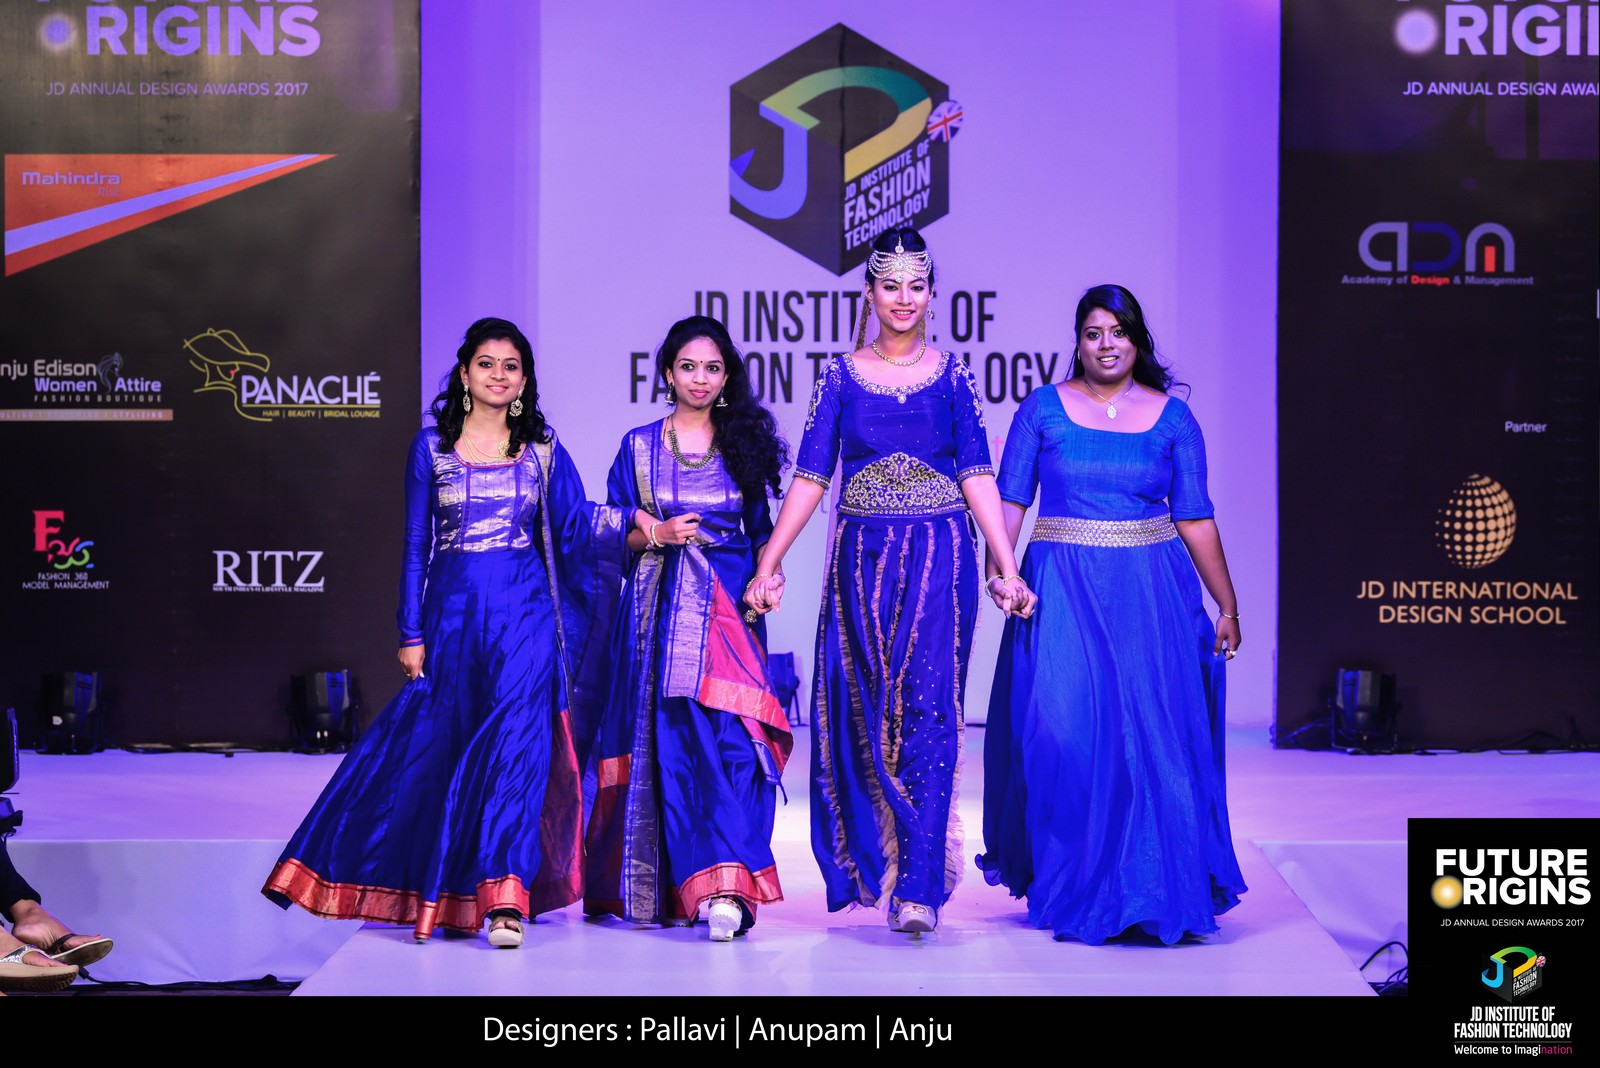 Prima Donna – Future Origin – JD Annual Design Awards 2017 - Cochin prima donna Prima Donna – Future Origin – JD Annual Design Awards 2017 | Cochin Prima Donna     Future Origin     JD Annual Design Awards 2017 Cochin 8